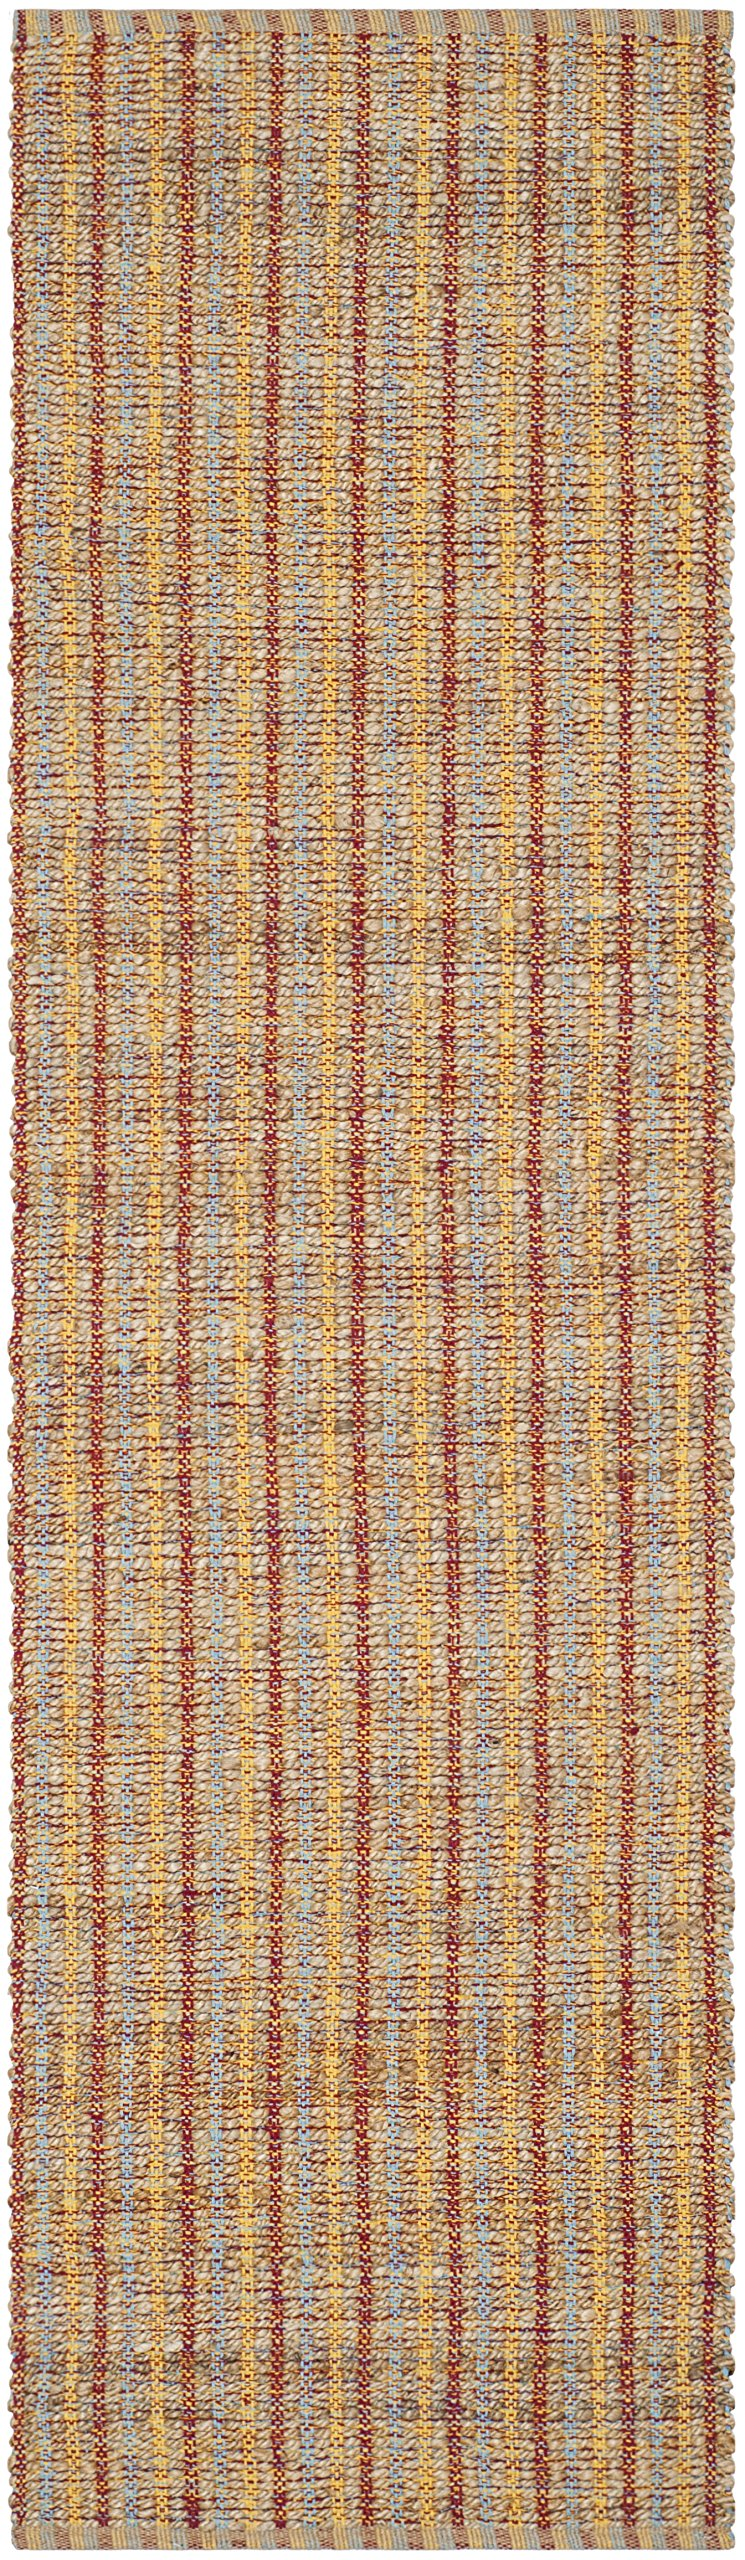 Safavieh Cape Cod Collection CAP102A Handmade Beige and Rust Jute Runner (2'3 x 8') by Safavieh